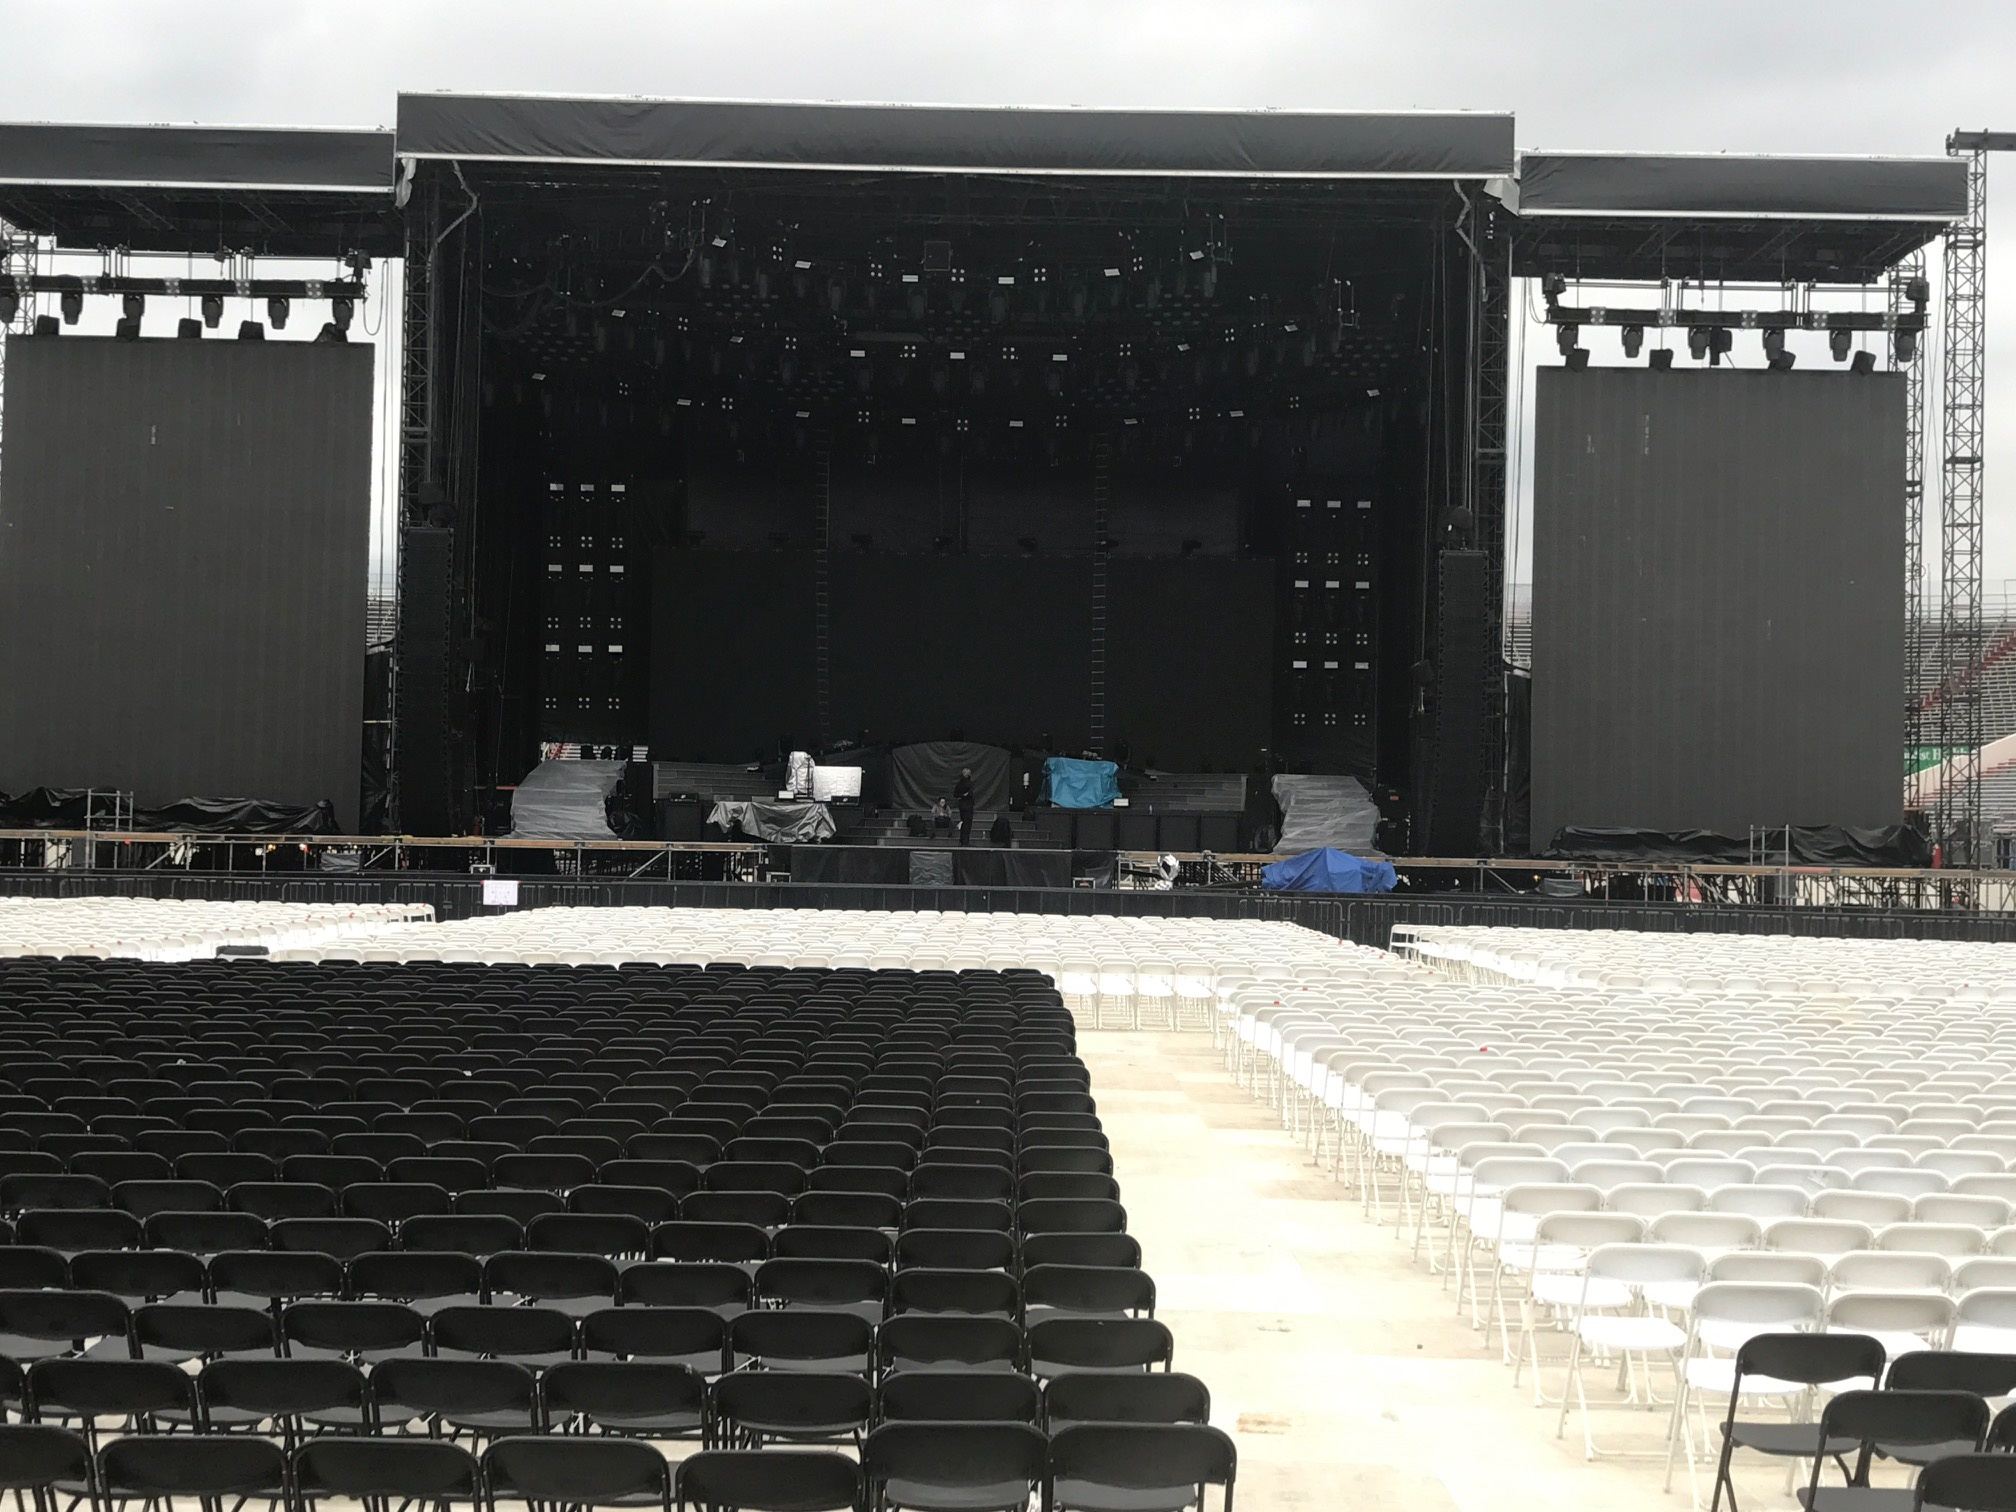 Event Stage And Seats